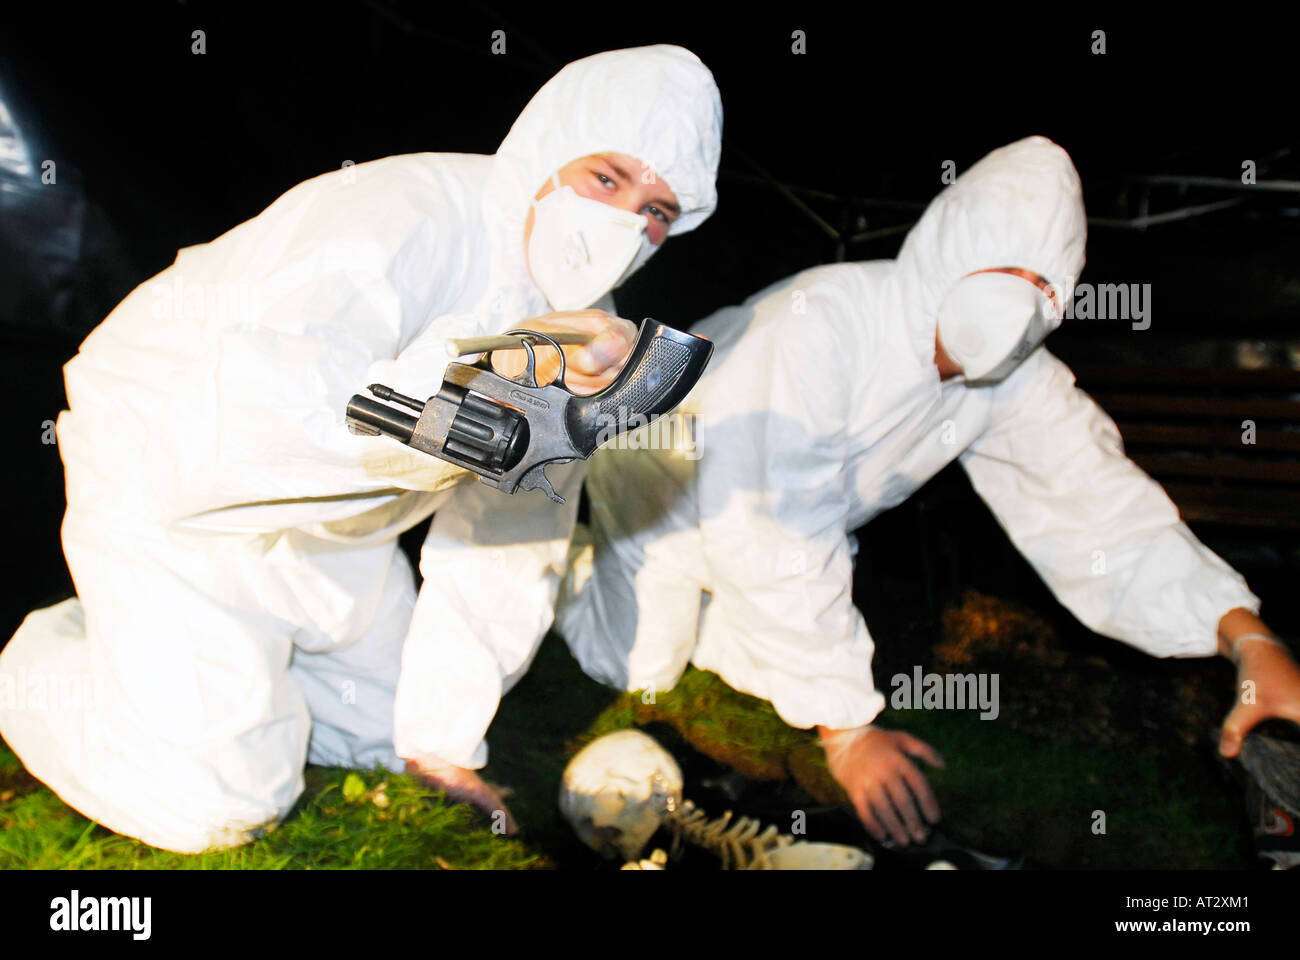 Forensic science students at mock murder scene - Stock Image